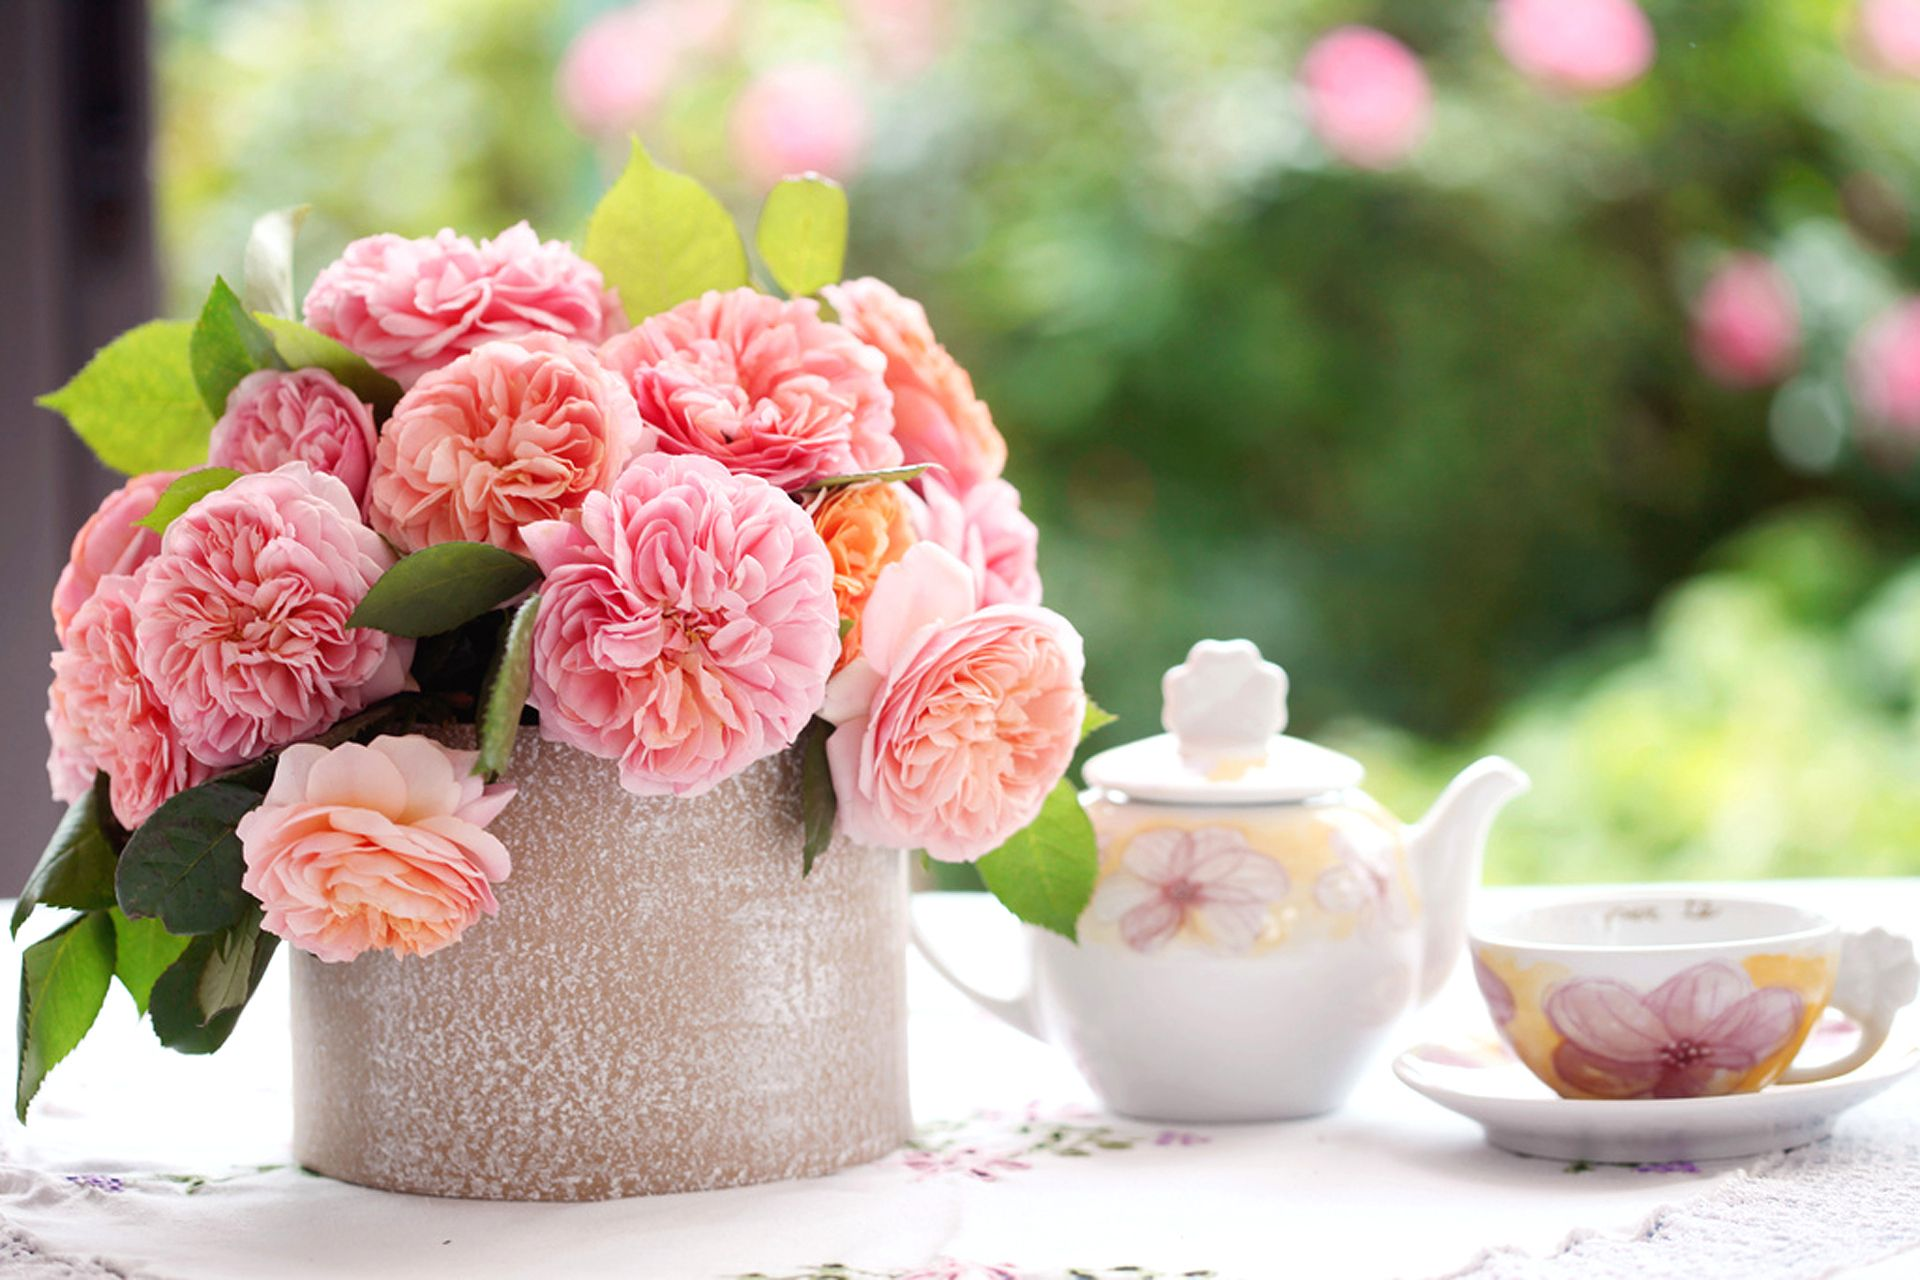 table in afternoon with pink rose on bokeh green